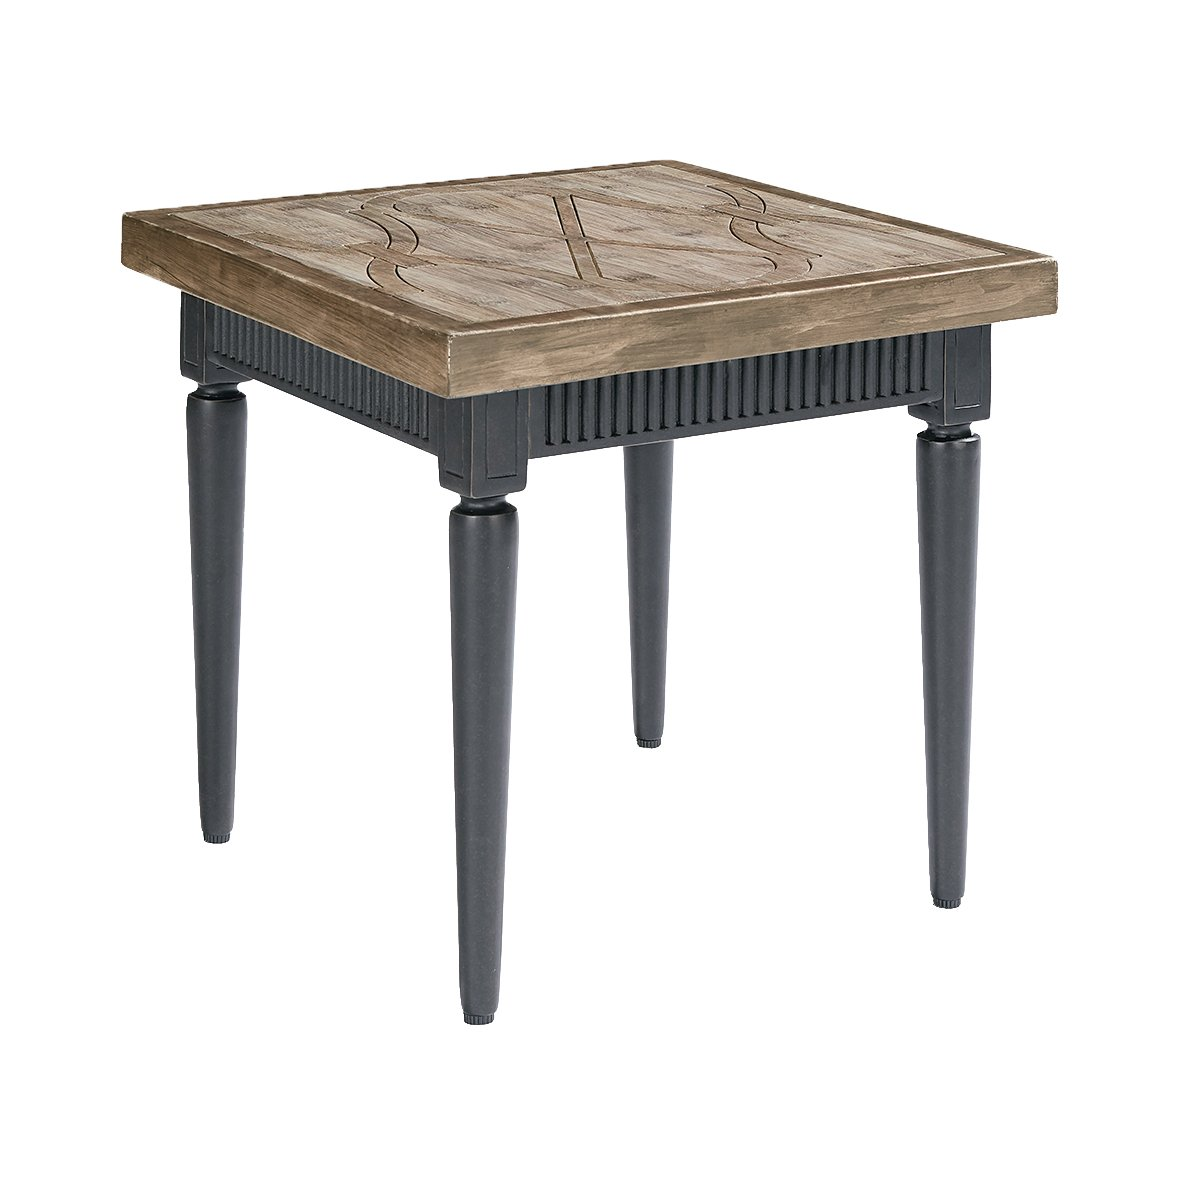 archer outdoor side table max sparrow square furniture tables accent with storage glass lamp long skinny behind couch grey dining room modern runner patterns small round cocktail